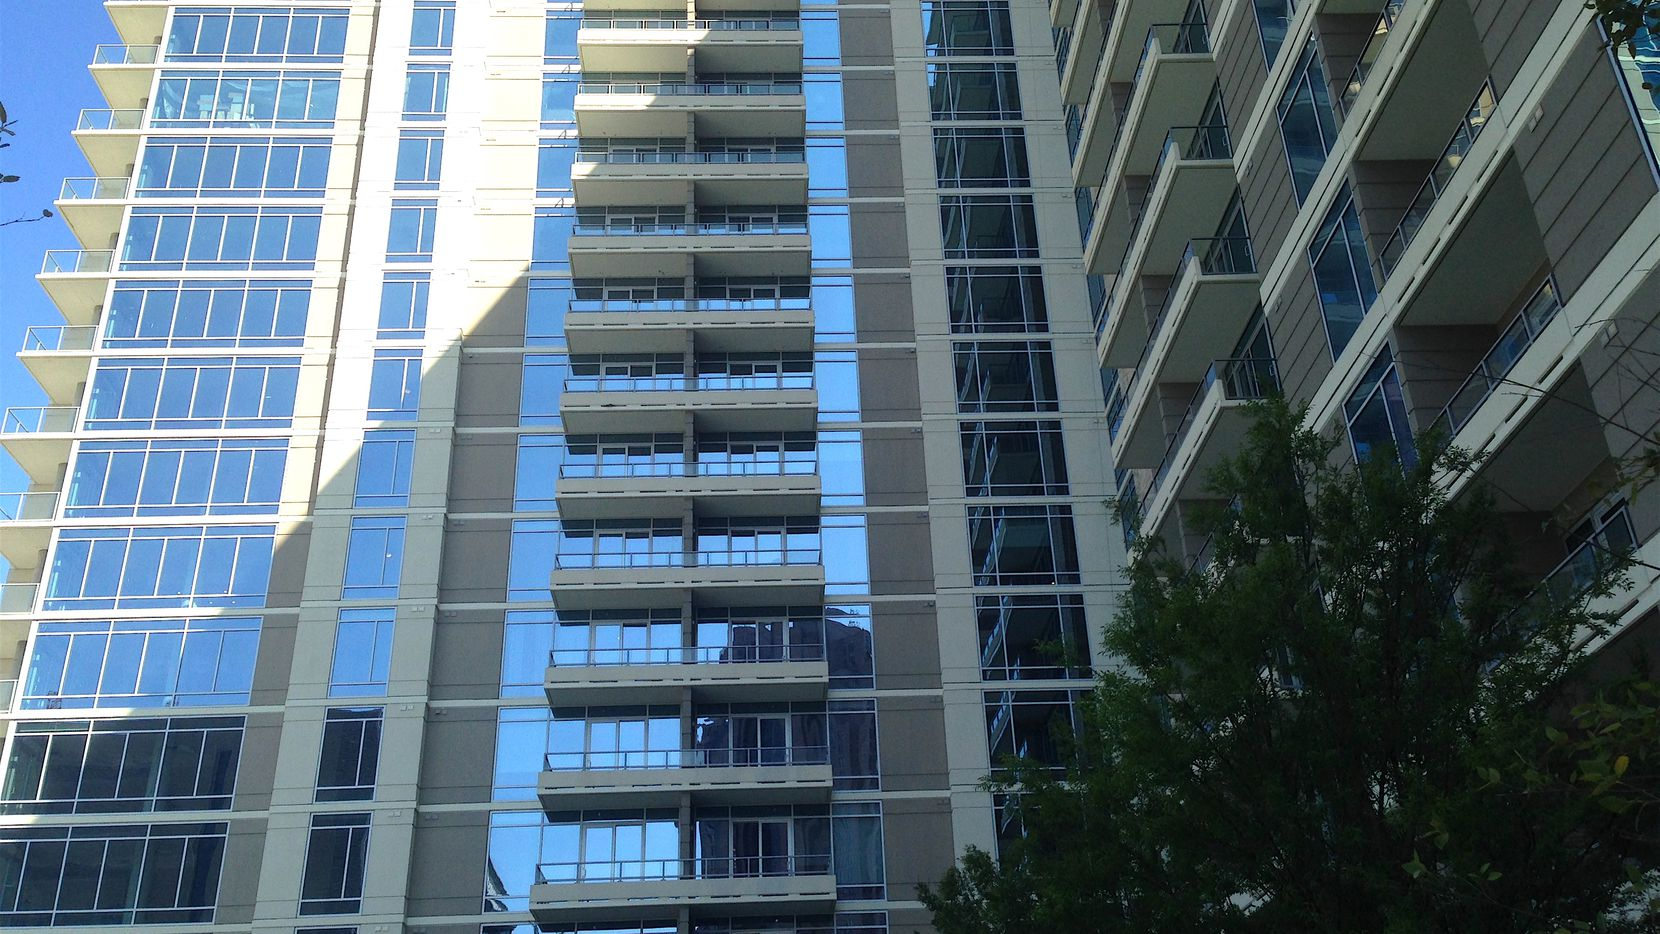 More than 95% of D-FW apartment renters are current with payments.